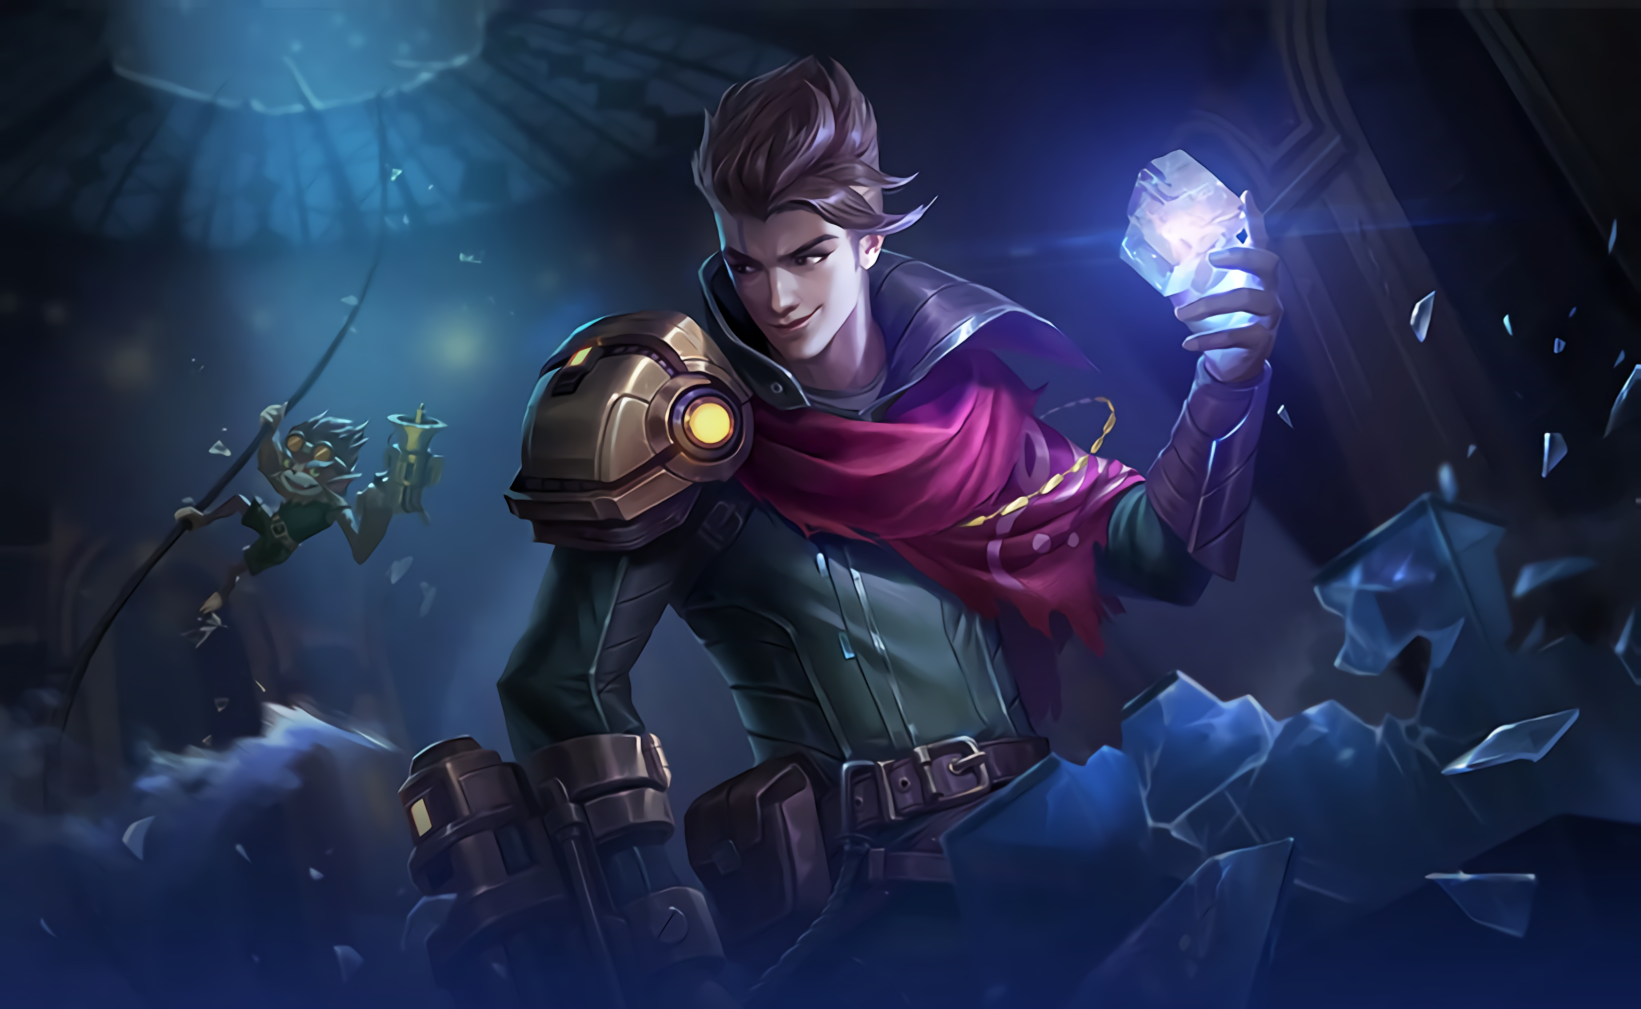 eGG | Mobile Legends Ranked: GEEK FAM ICON's Top 5 Heroes